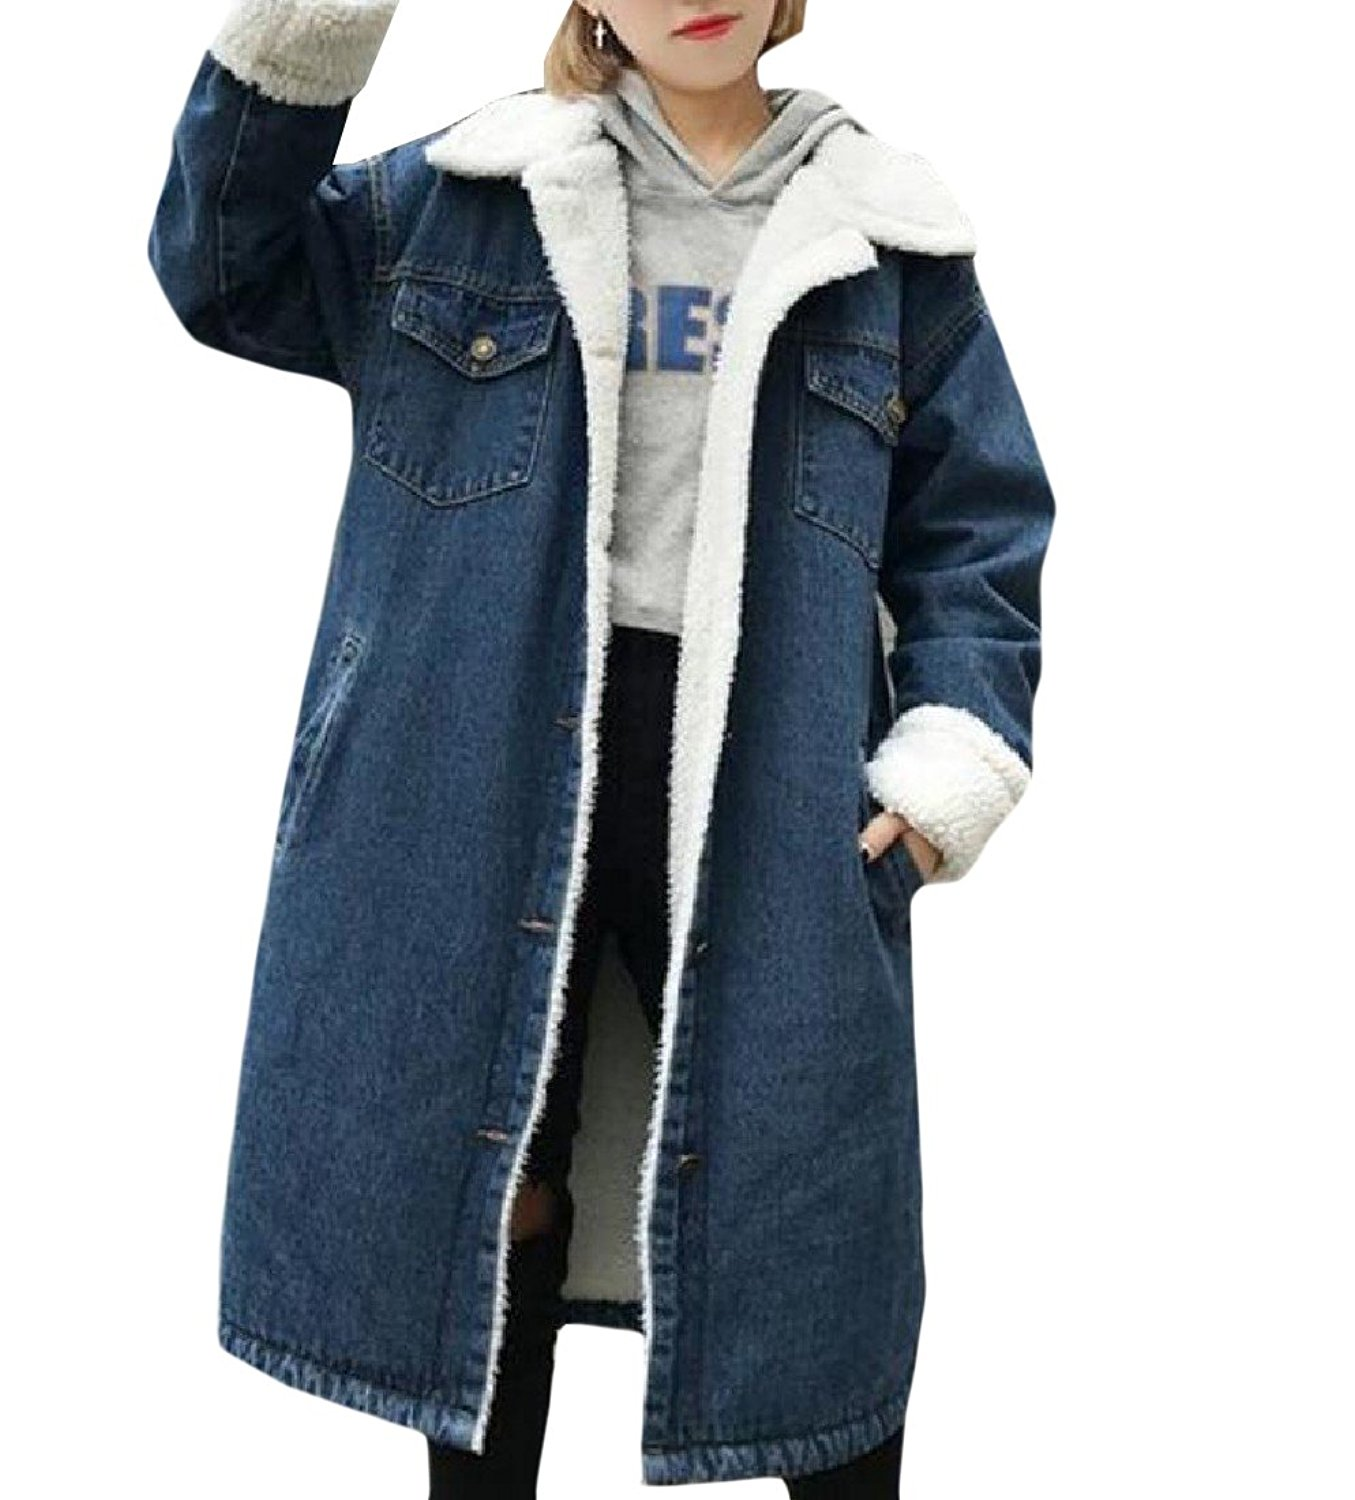 Coolred-Women Fur Collar Warm Mid-long Thick Button Down Jean Jacket